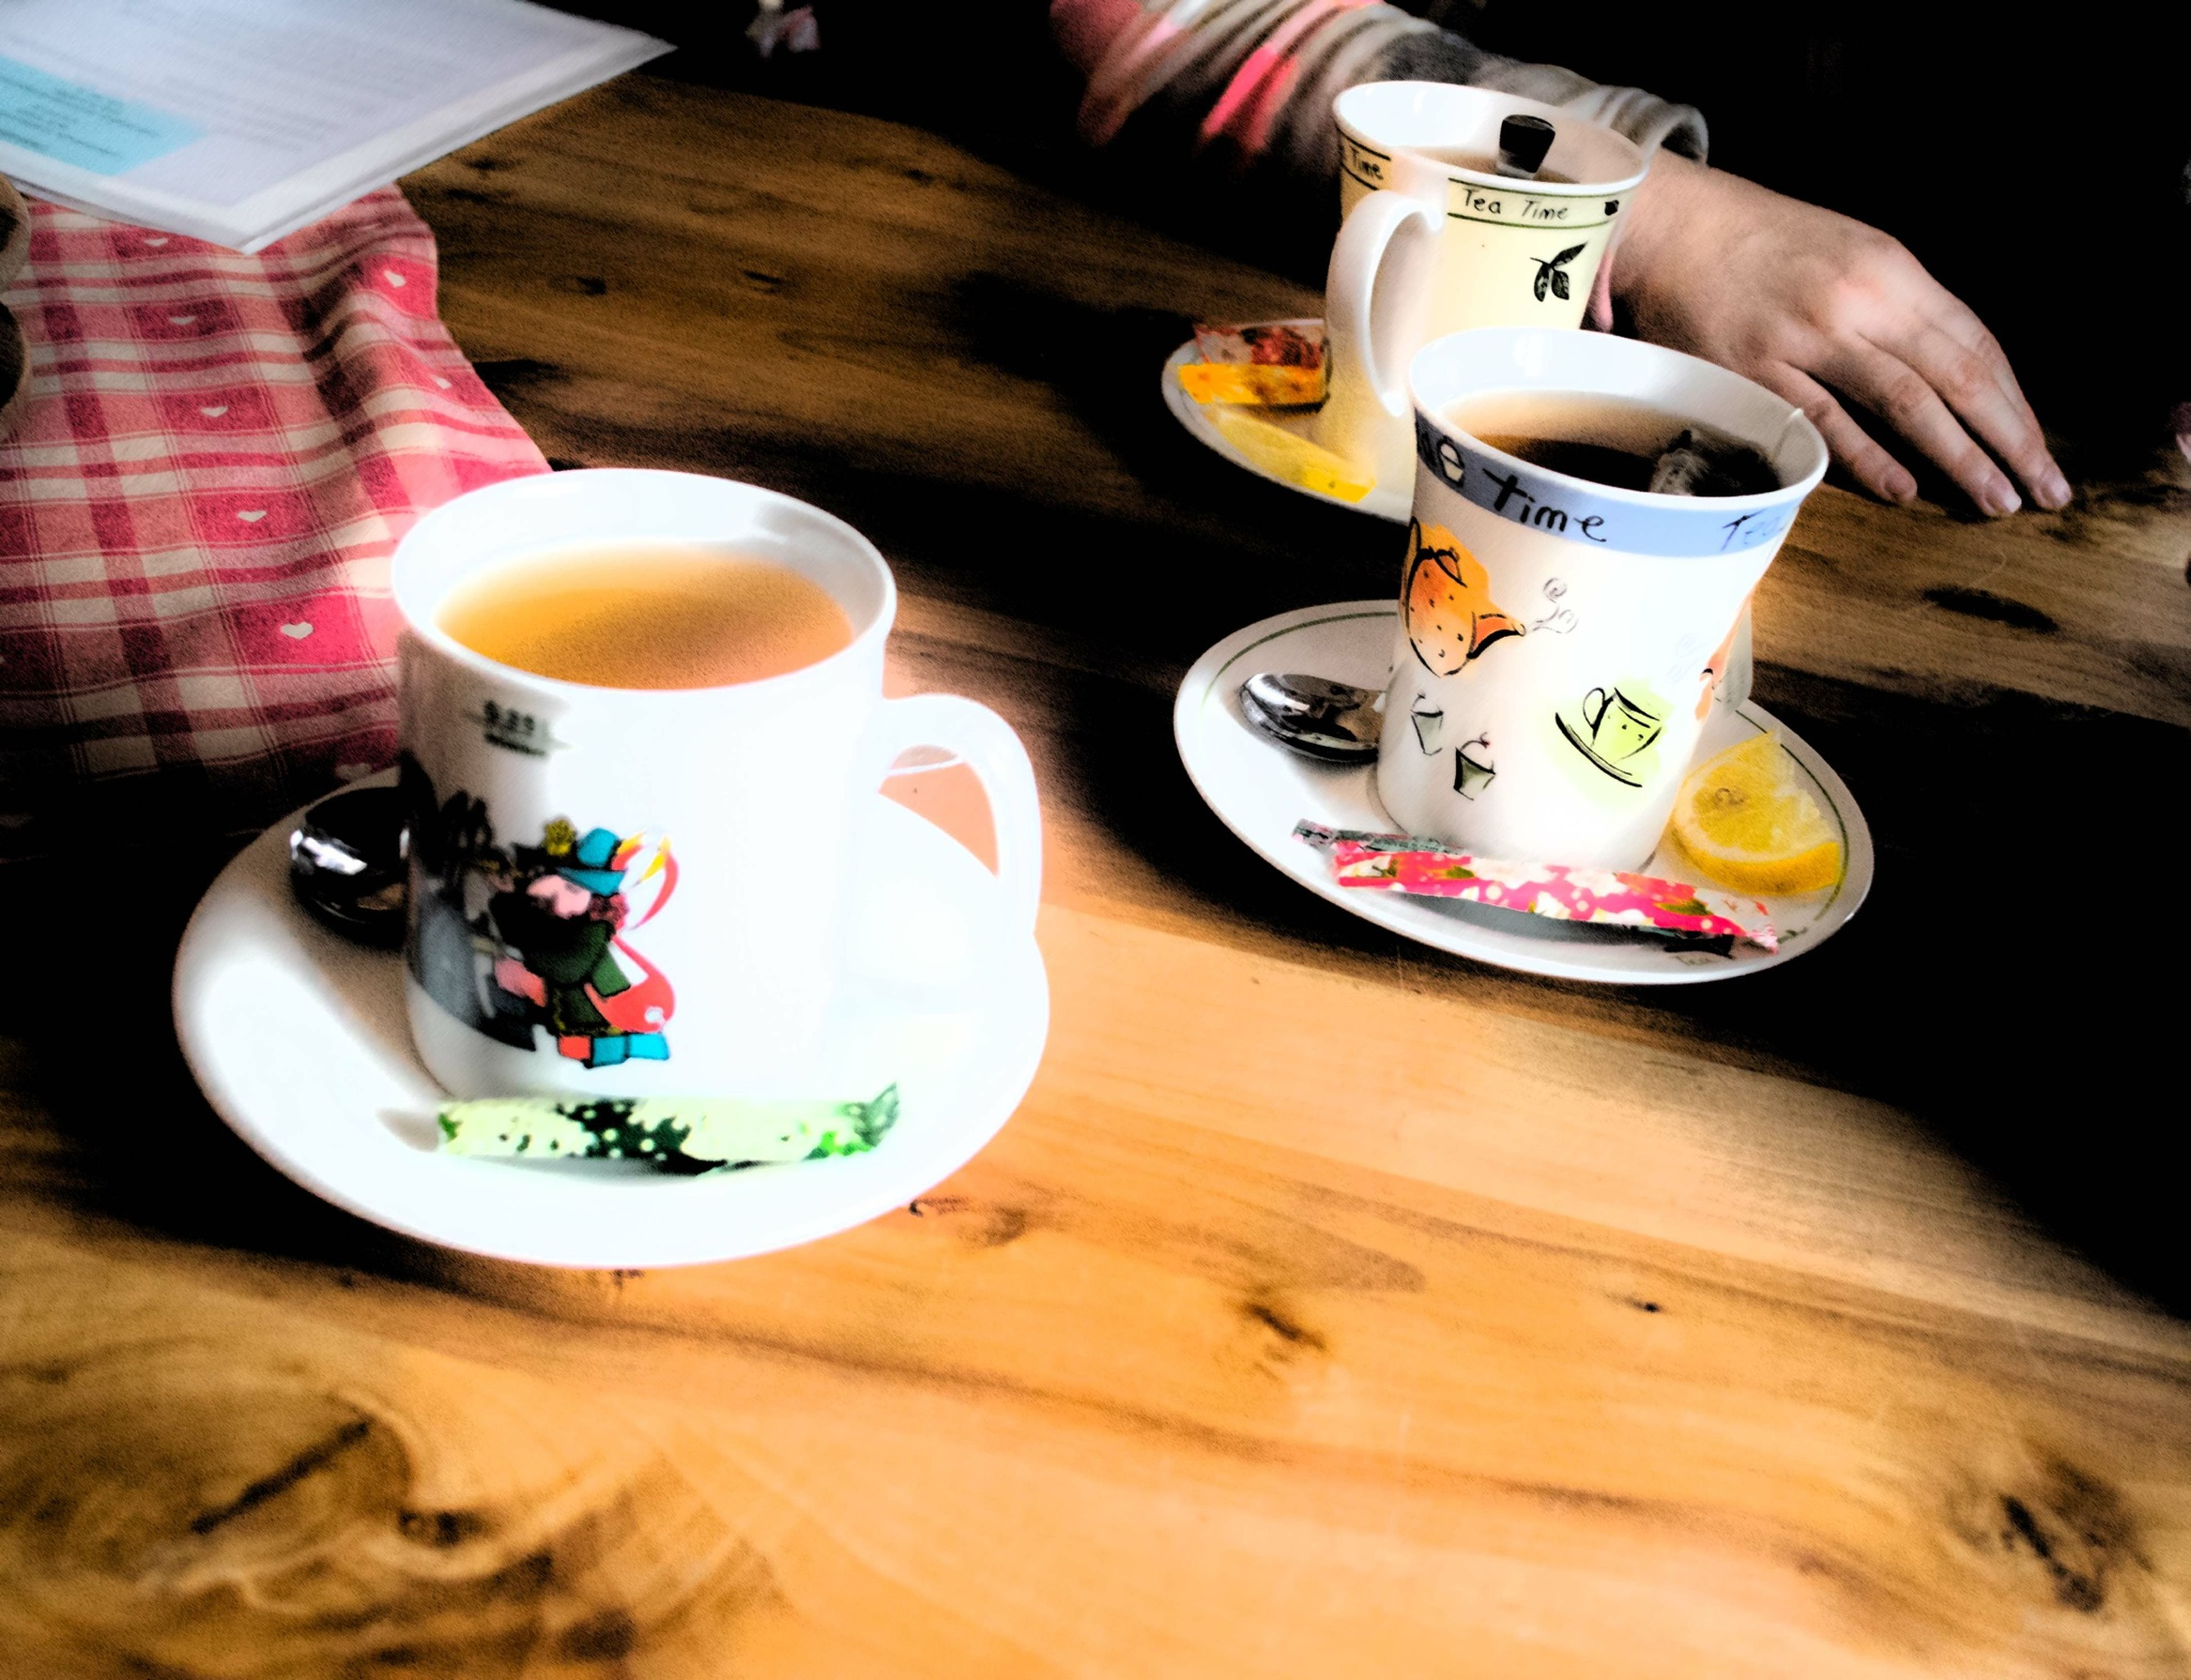 indoors, food and drink, drink, table, coffee cup, refreshment, coffee - drink, freshness, saucer, cup, coffee, still life, spoon, high angle view, breakfast, food, drinking glass, tea cup, plate, tea - hot drink